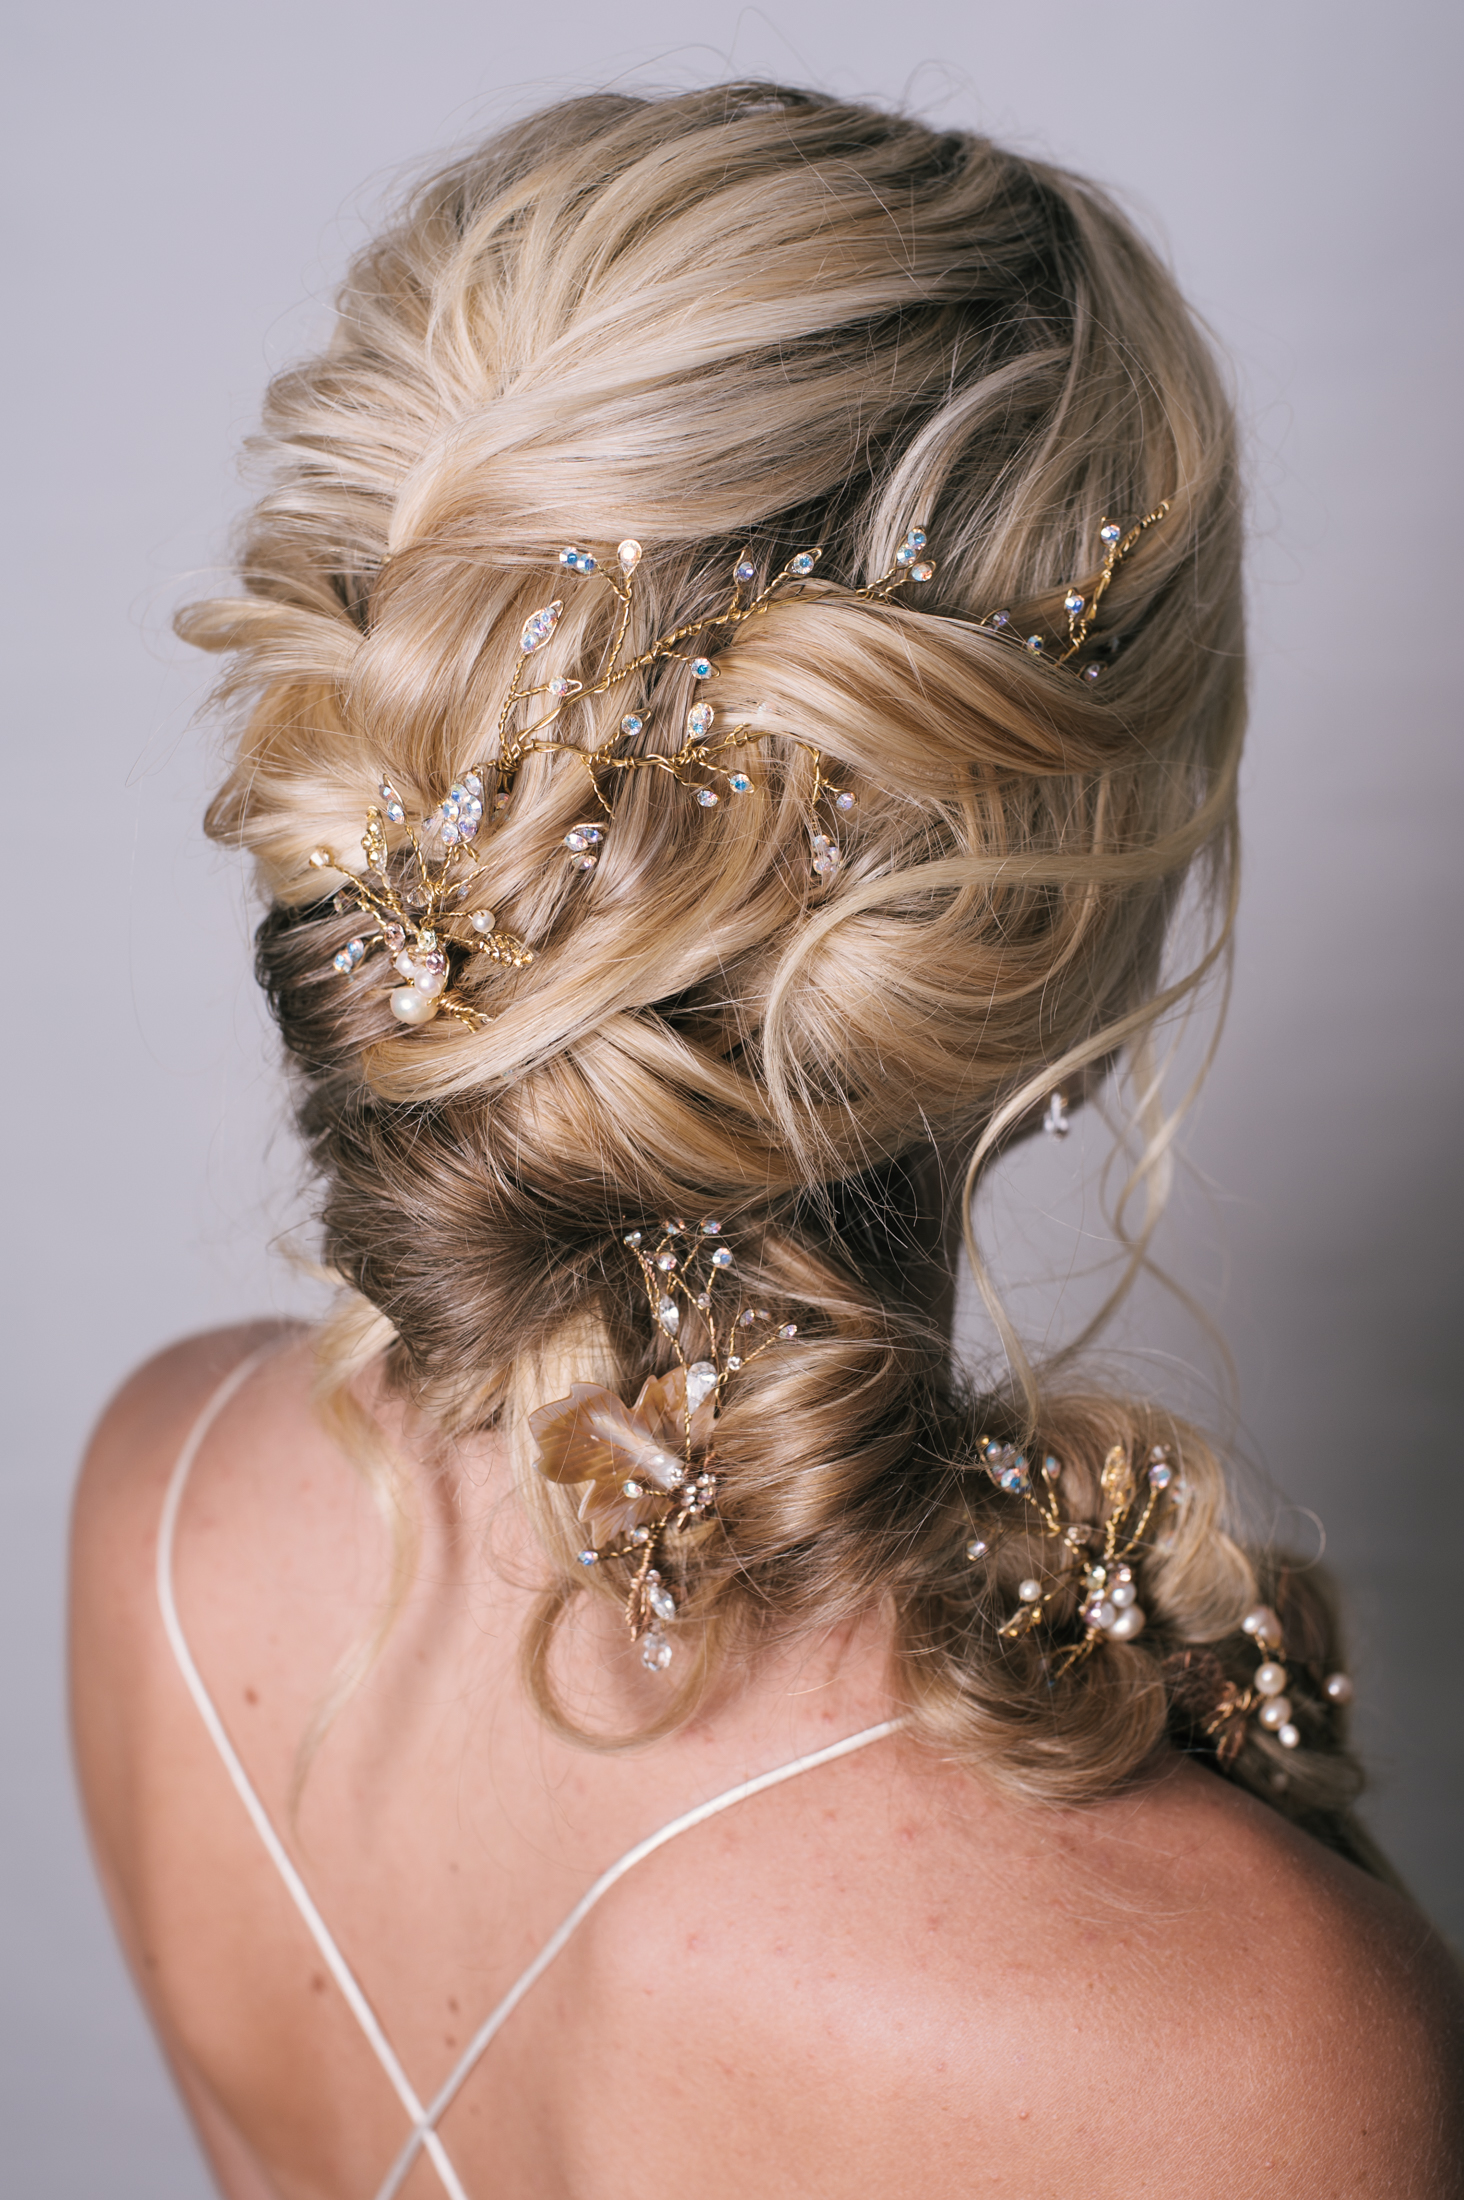 Twist & Texture - For the bride that doesn't want a up do but still wants the hair not to be all down this style is the perfect solution!Adding some hairpieces in the right spots makes the hairstyle even more beautiful!